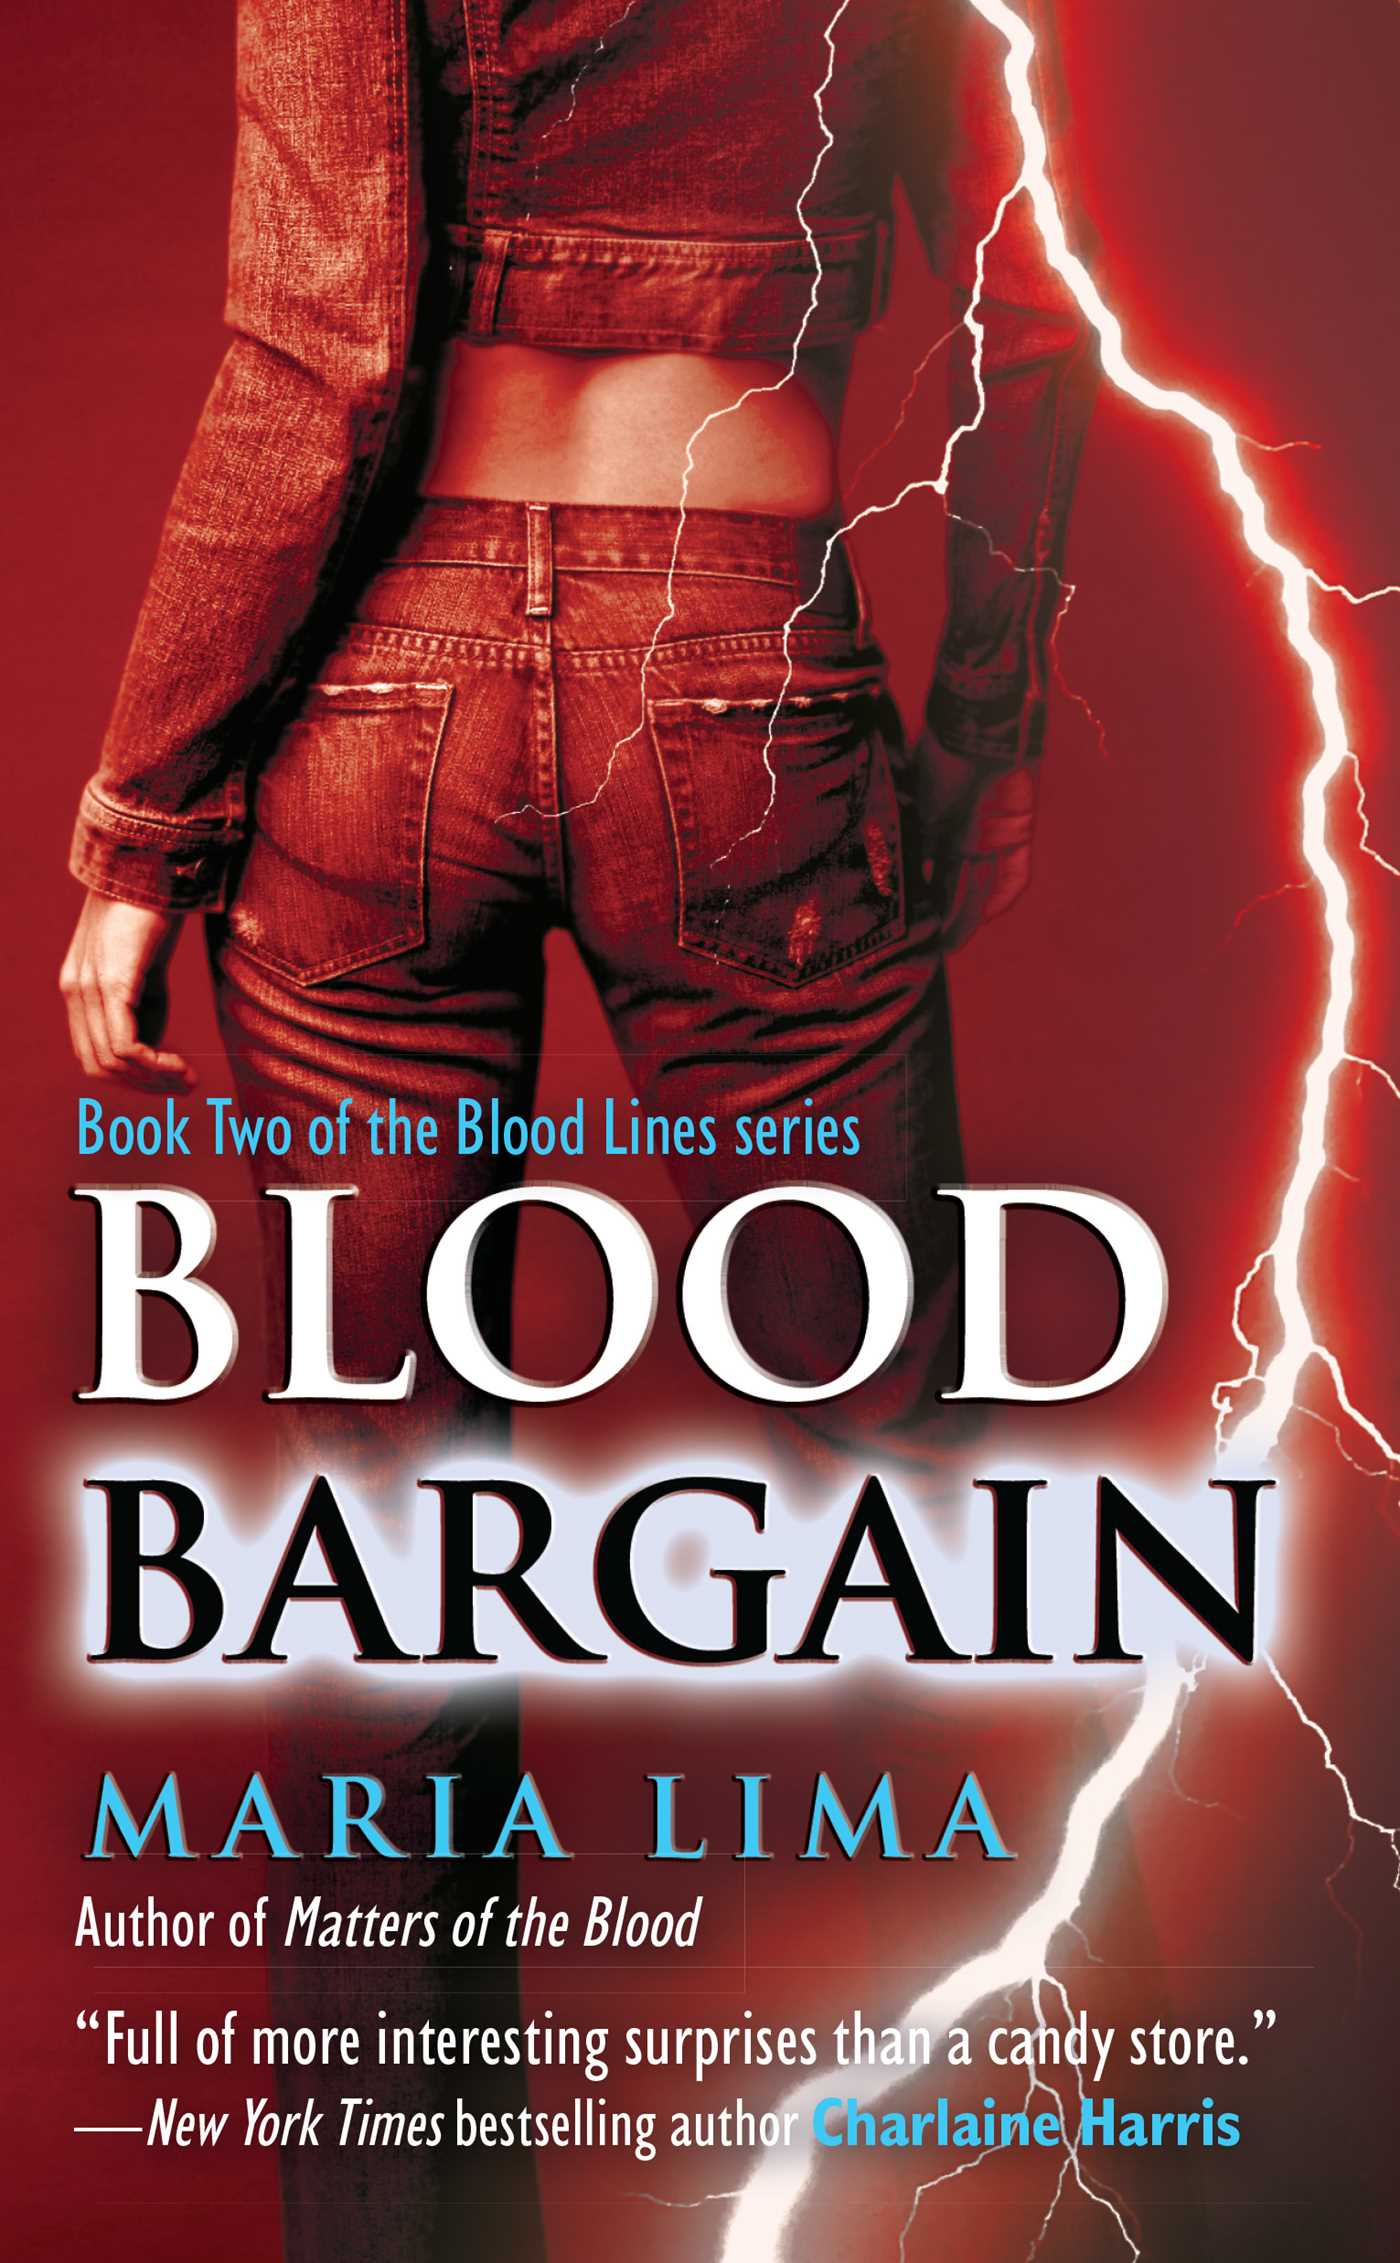 Blood bargain 9781439166727 hr